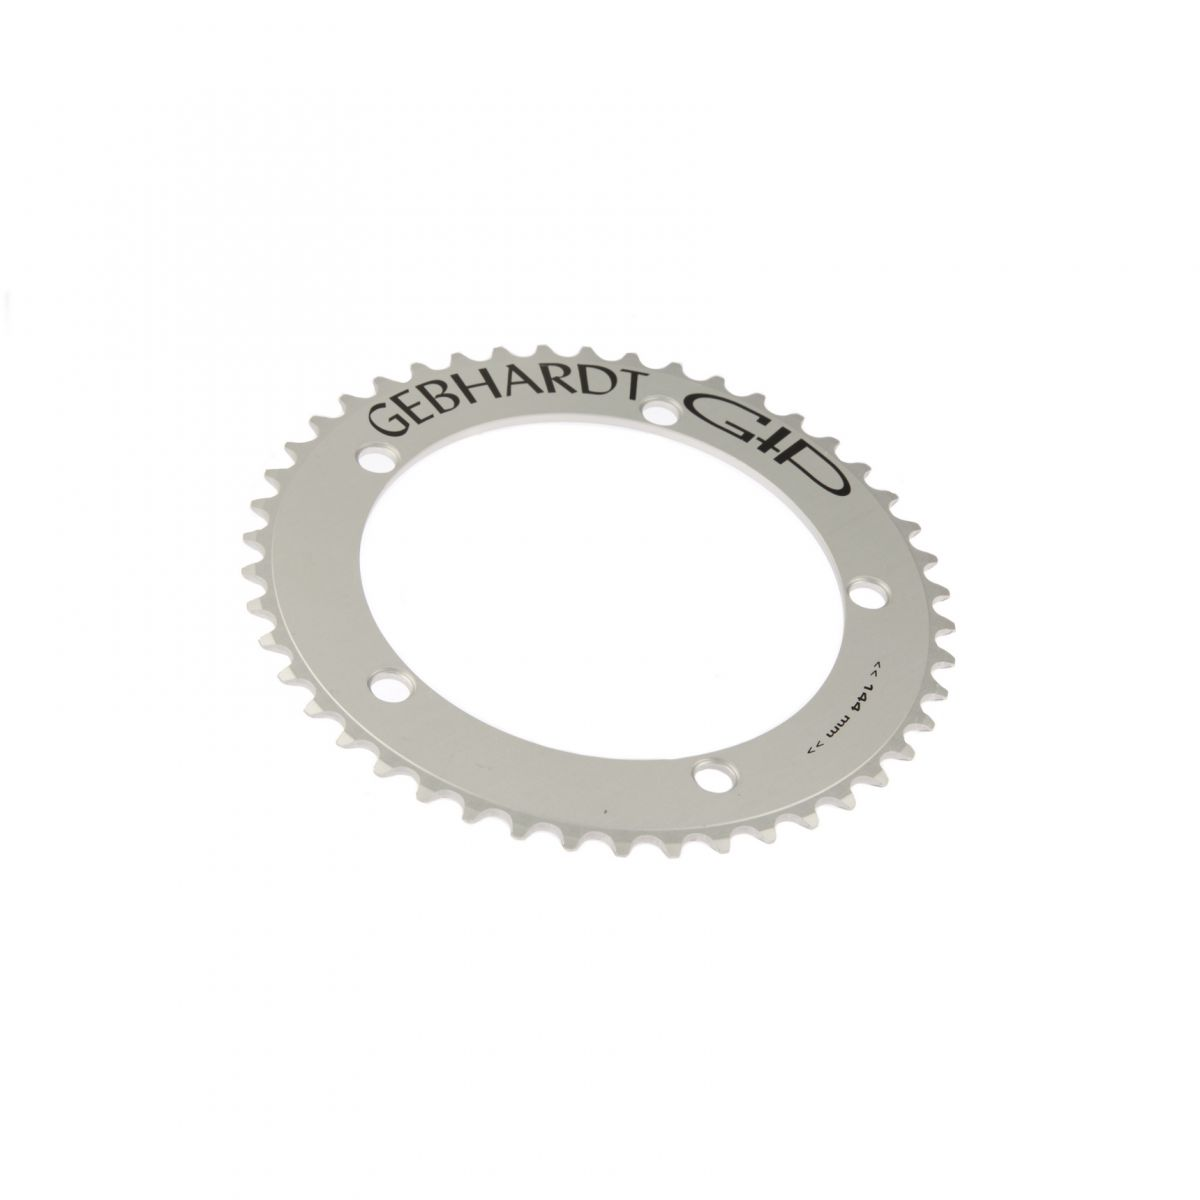 gebhardt chainring track 3mm bcd 144 mm 5hole 42t silver